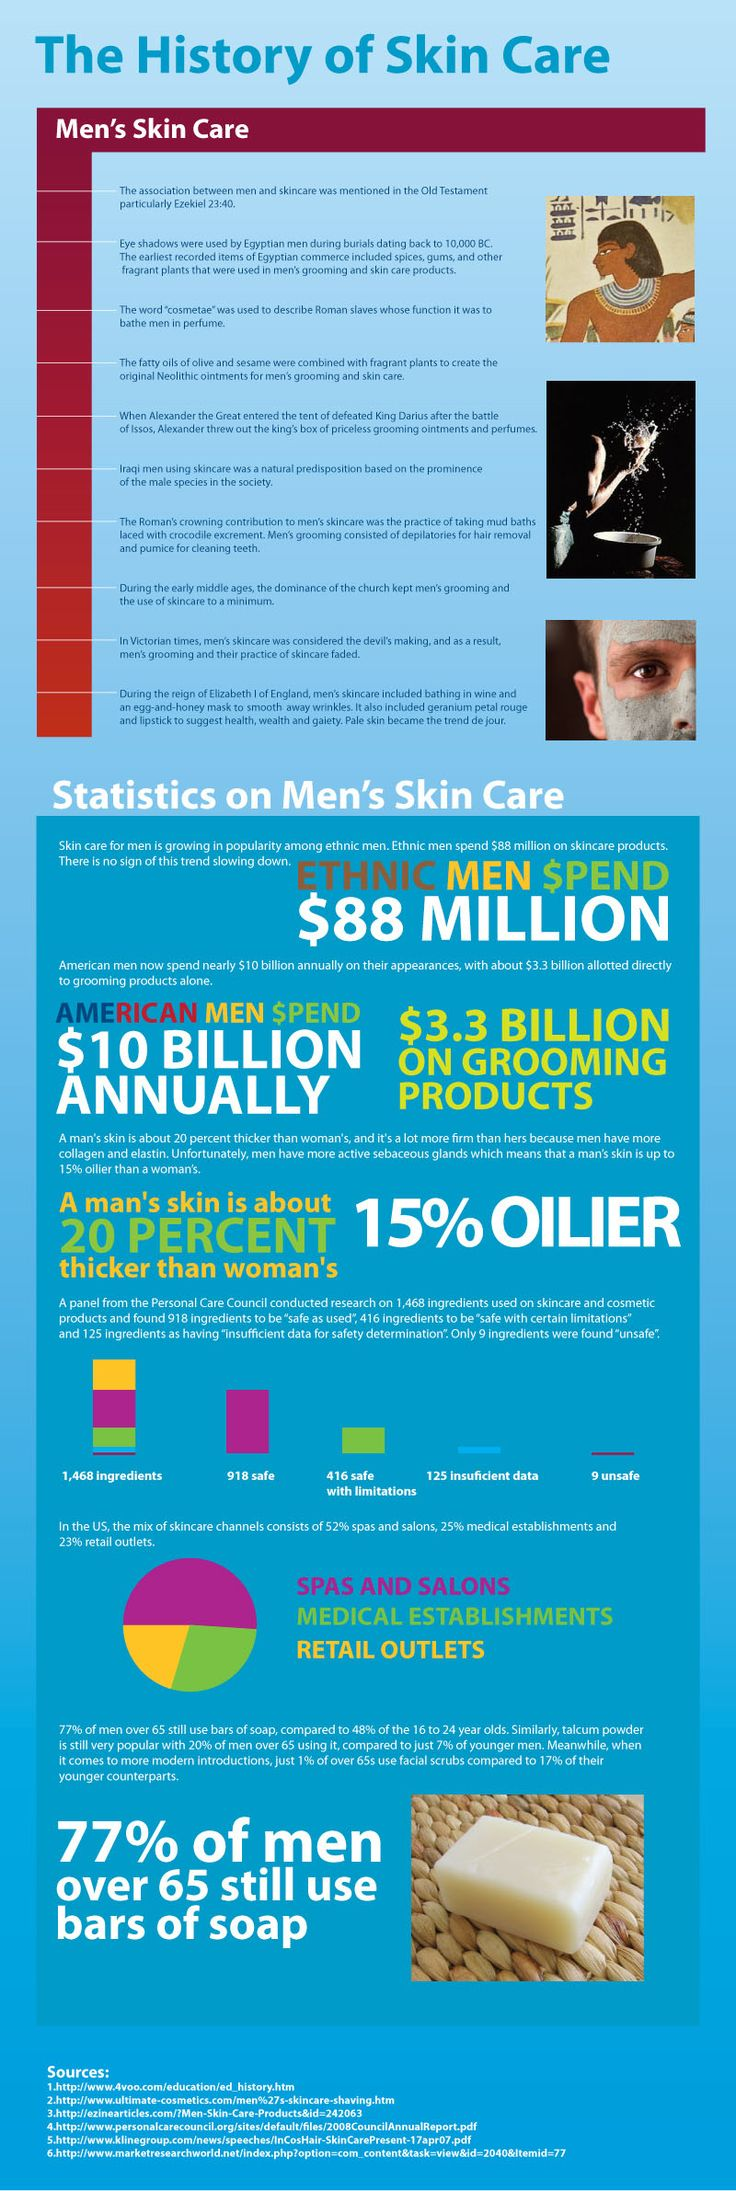 17 best juvederm filler images on pinterest dermal fillers facial interesting infographic on mens skin care do you believe american men or ethnic men spend more on skin care products fandeluxe Gallery